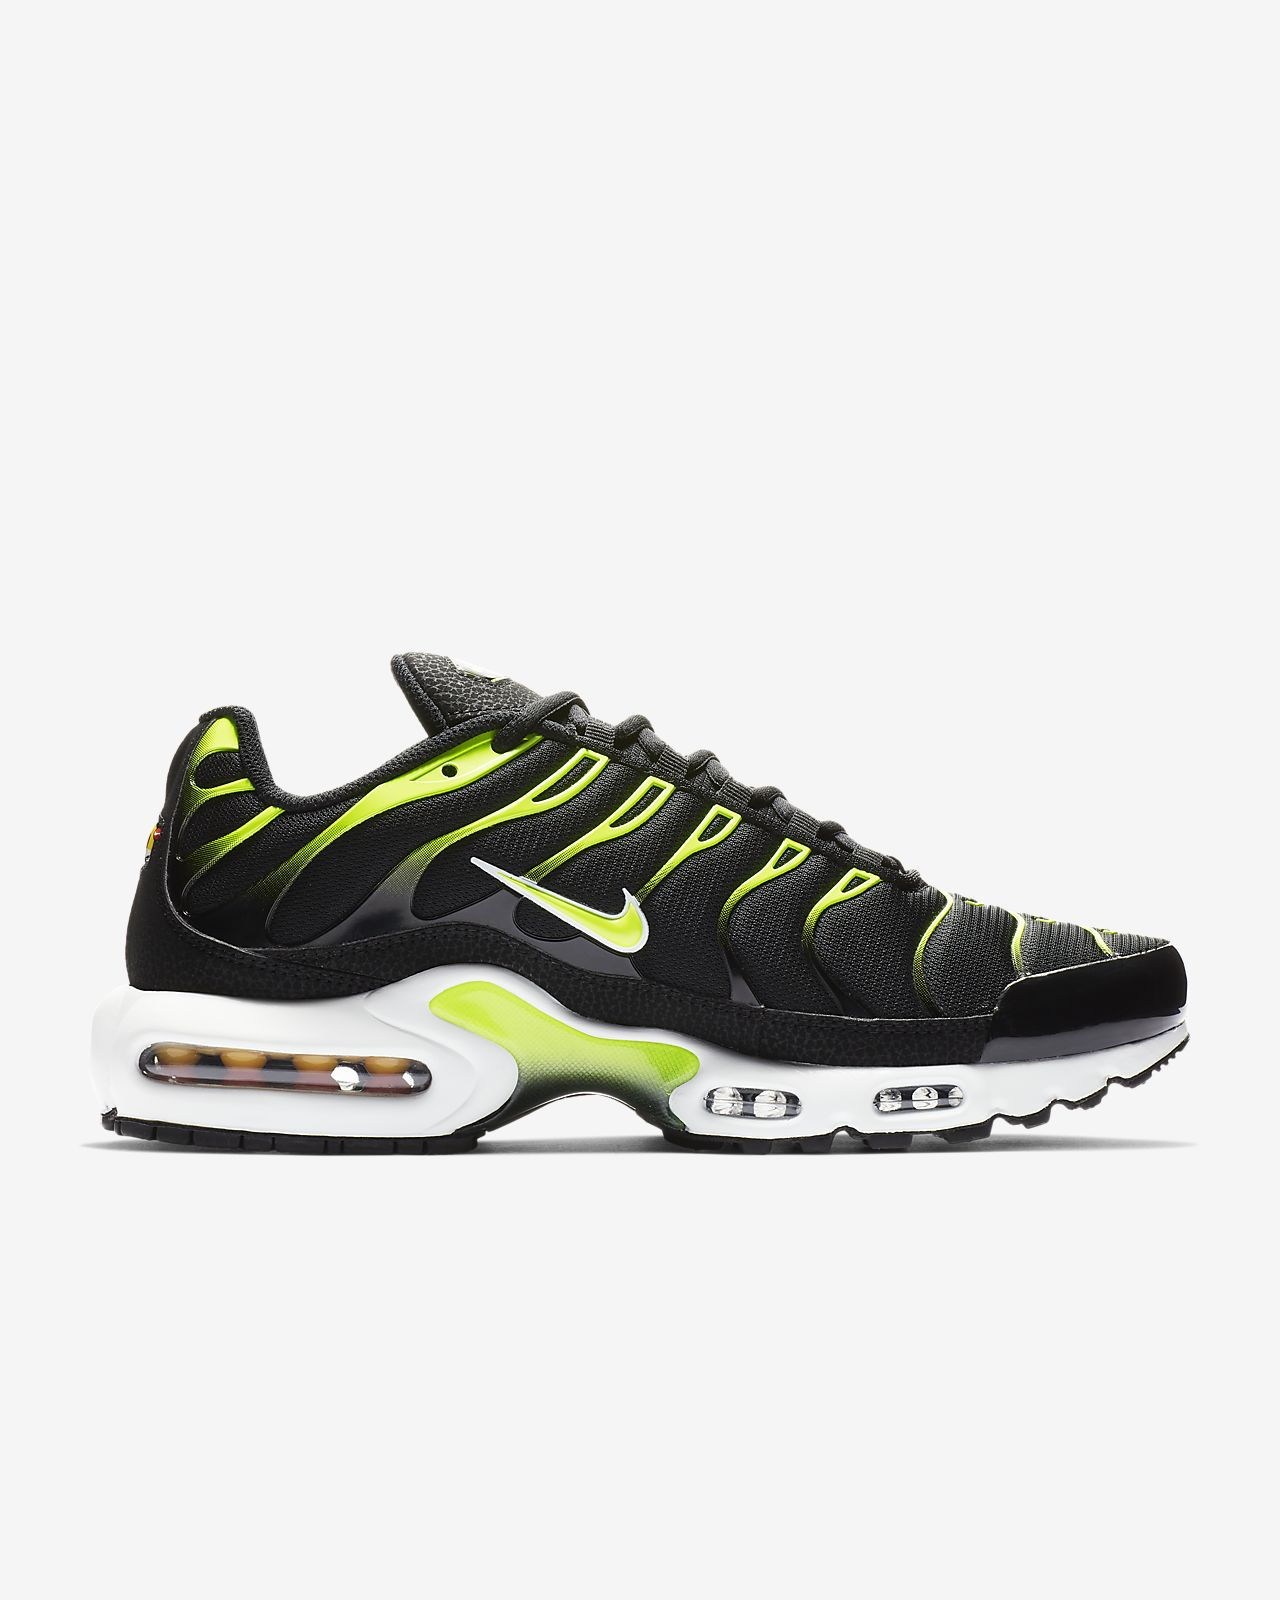 new product d36a3 ff13d Chaussure Nike Air Max Plus pour Homme. Nike.com FR